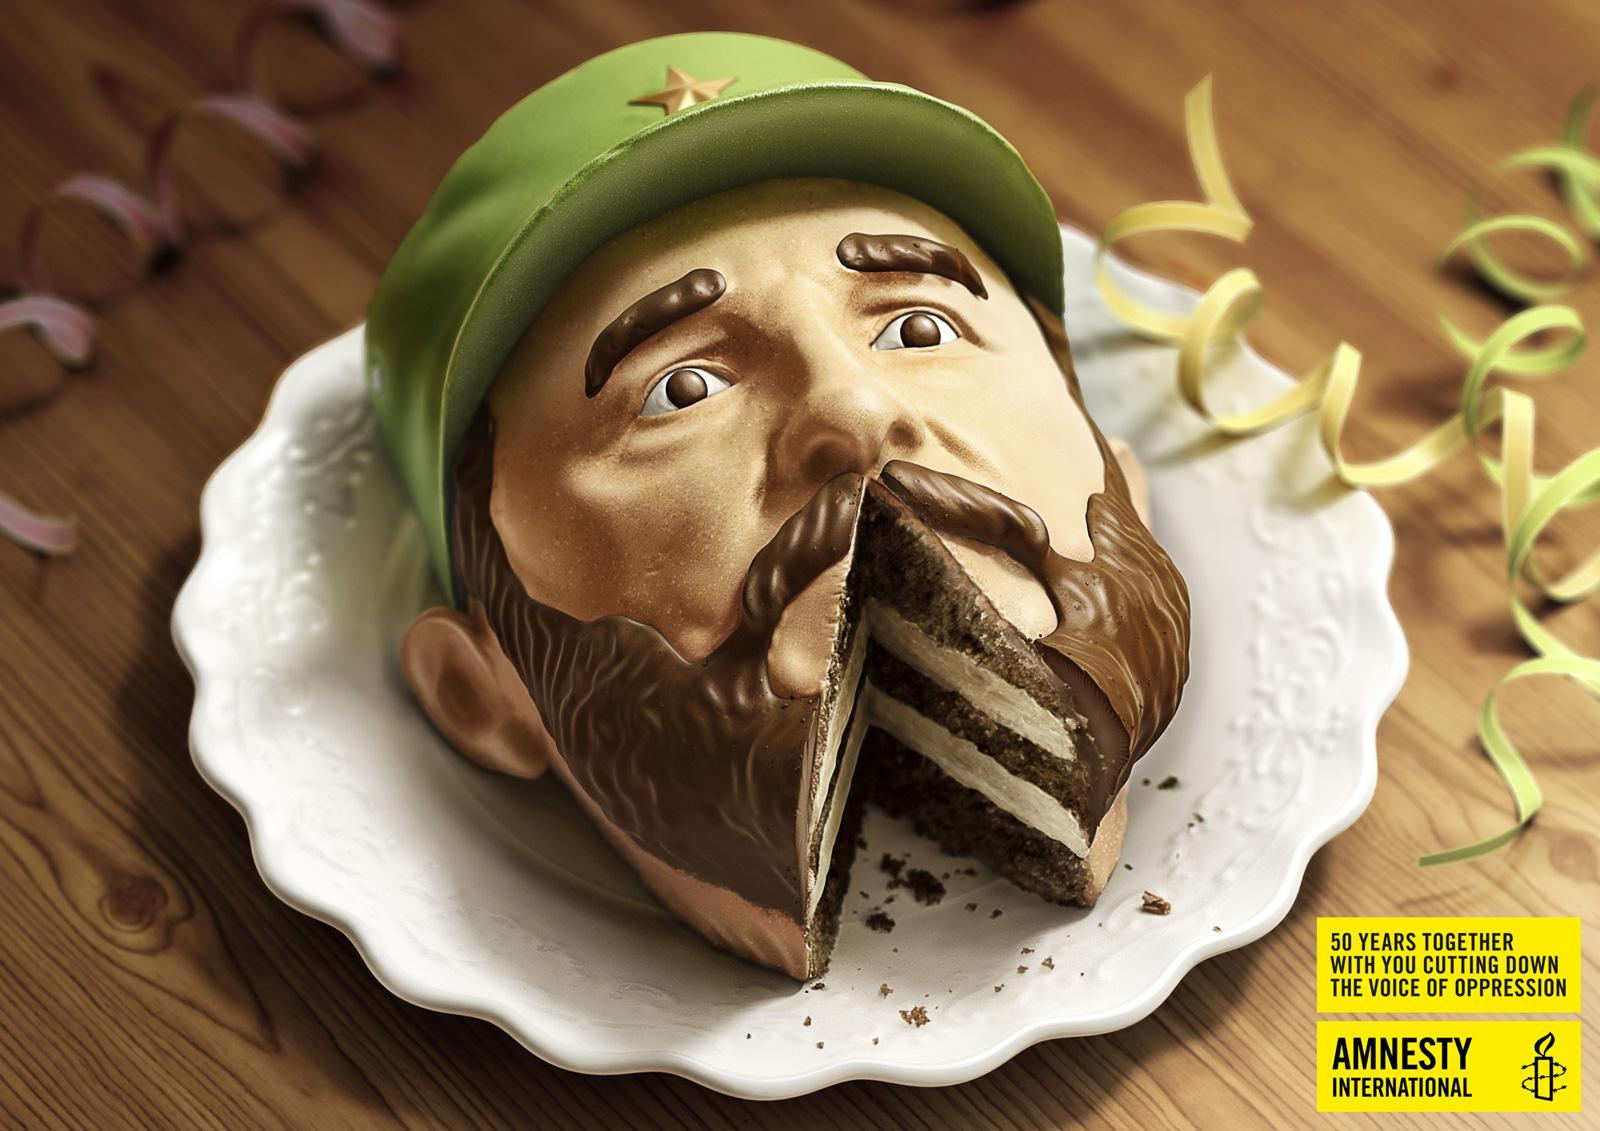 Amnesty_International_Castro_ibelieveinadv.jpg (1600×1131)